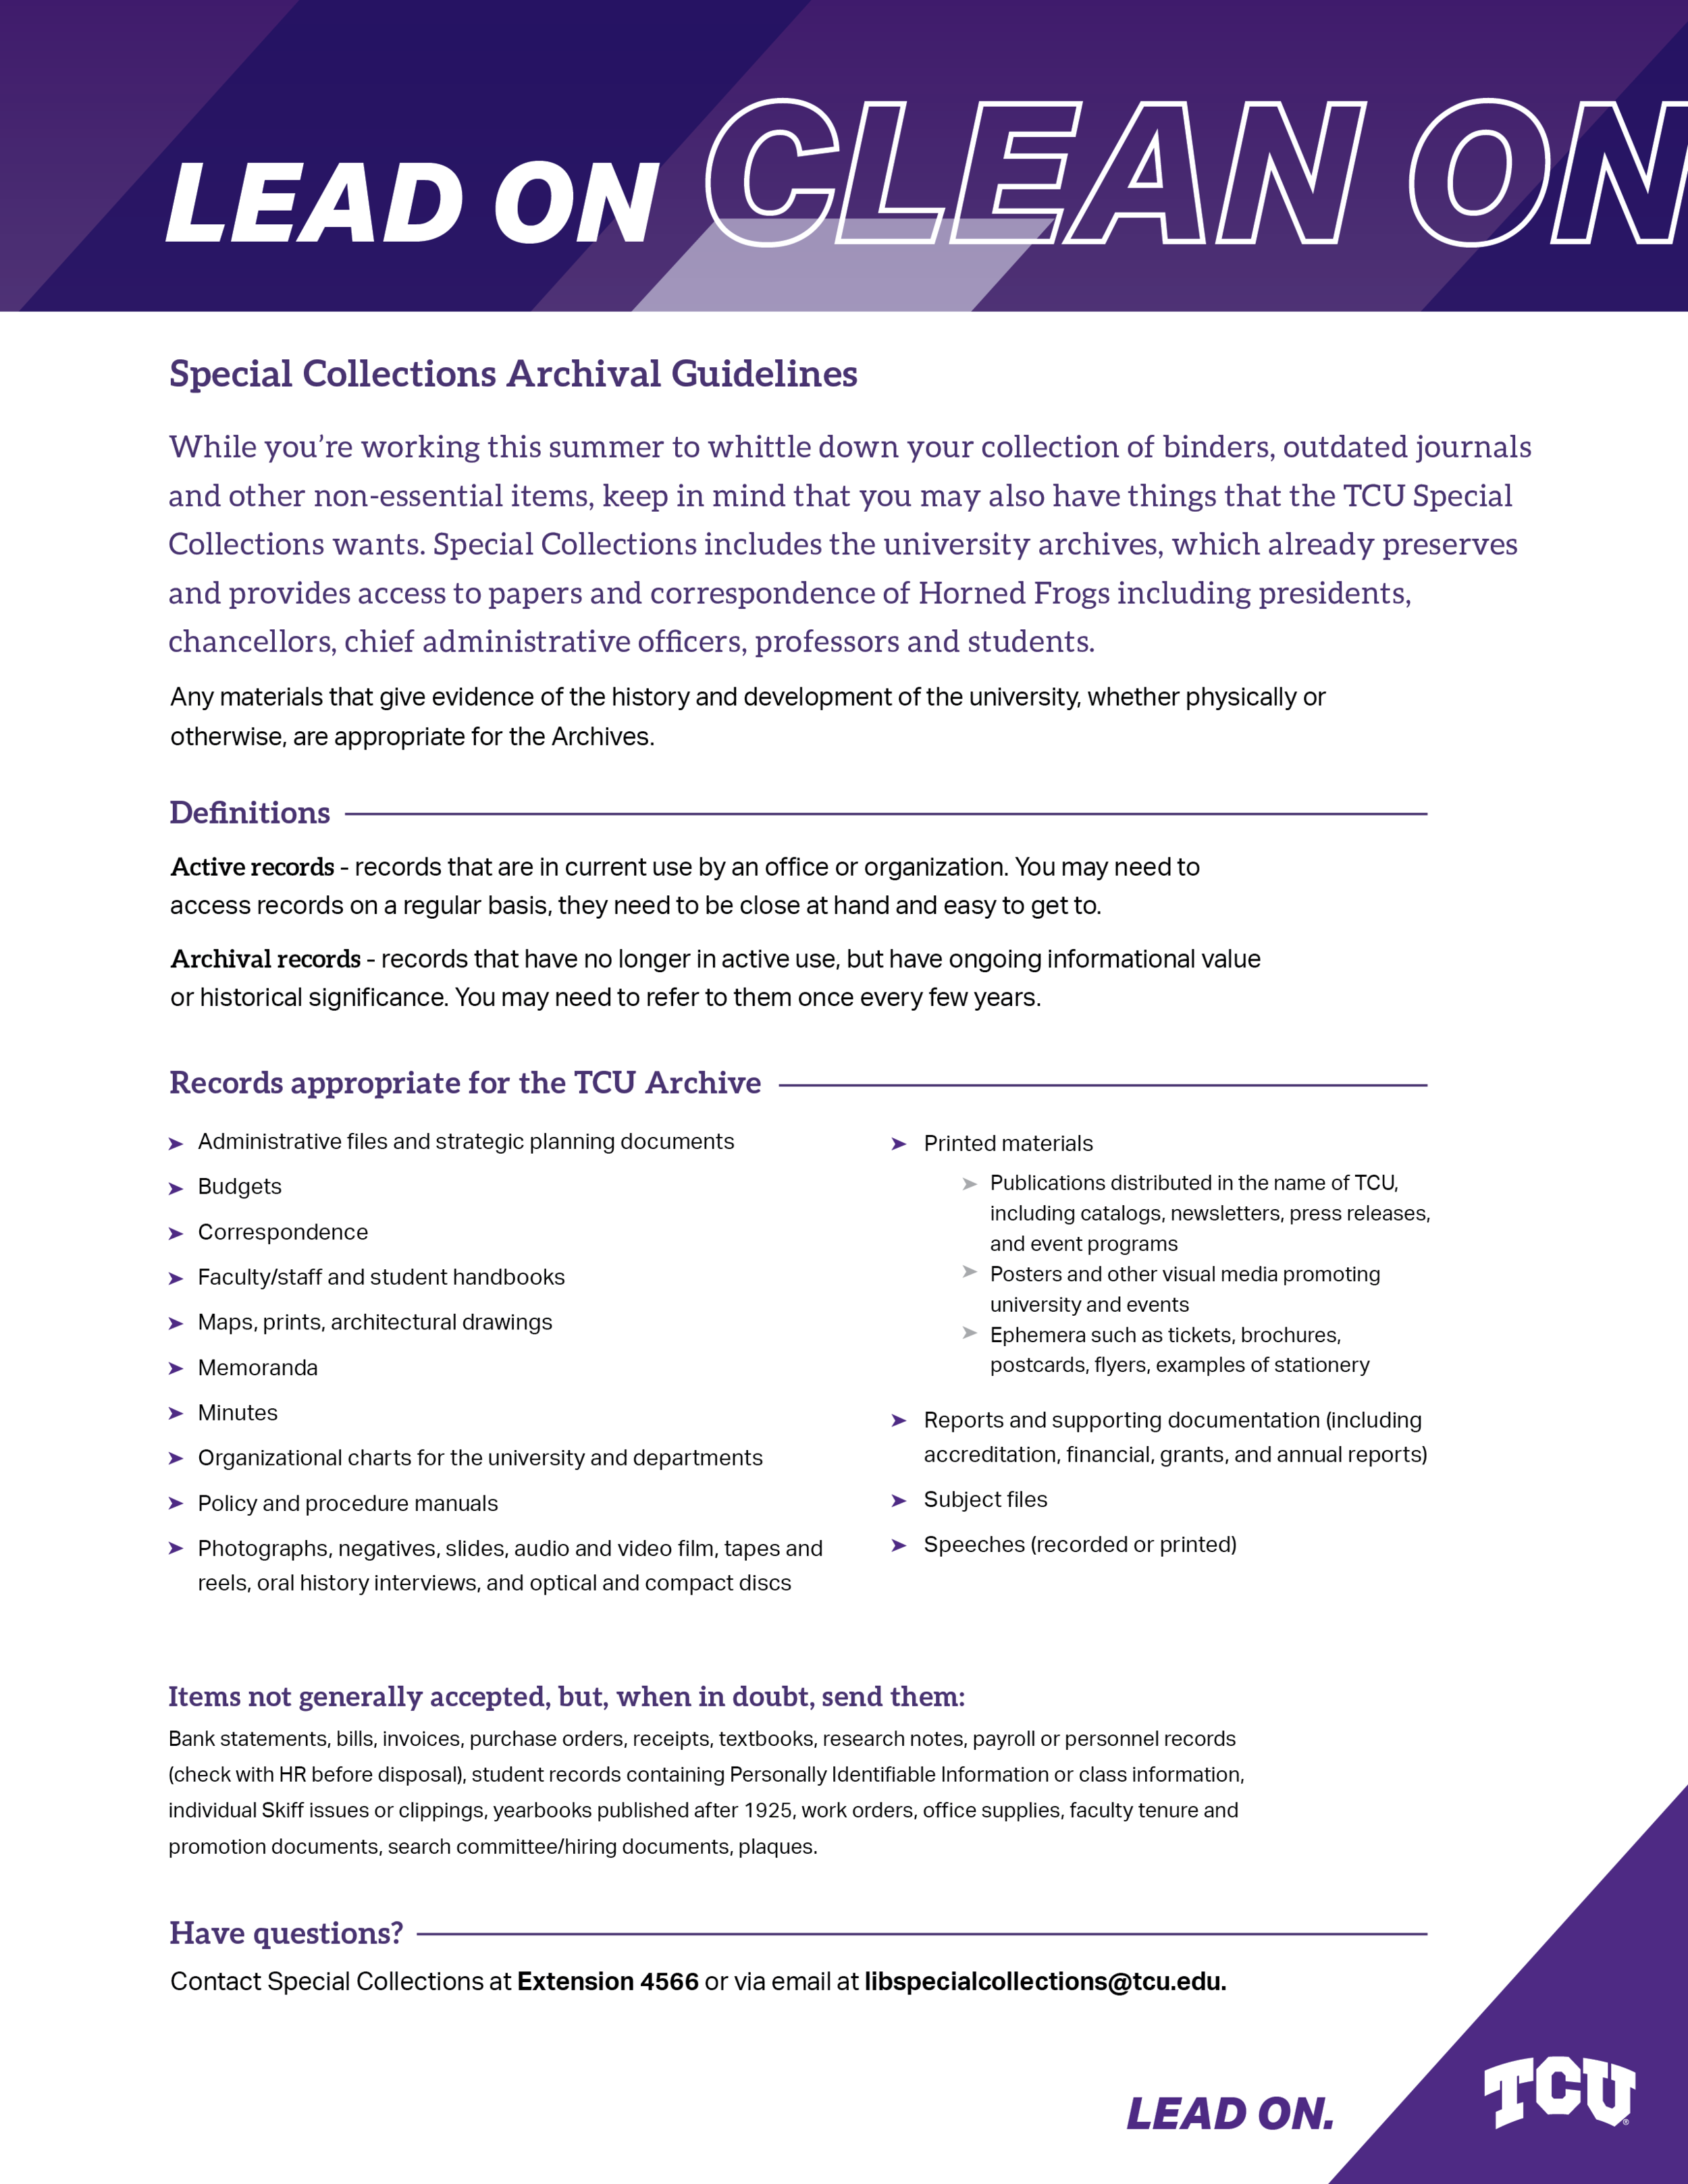 SpecialCollectionsArchival_v1.3-01.png